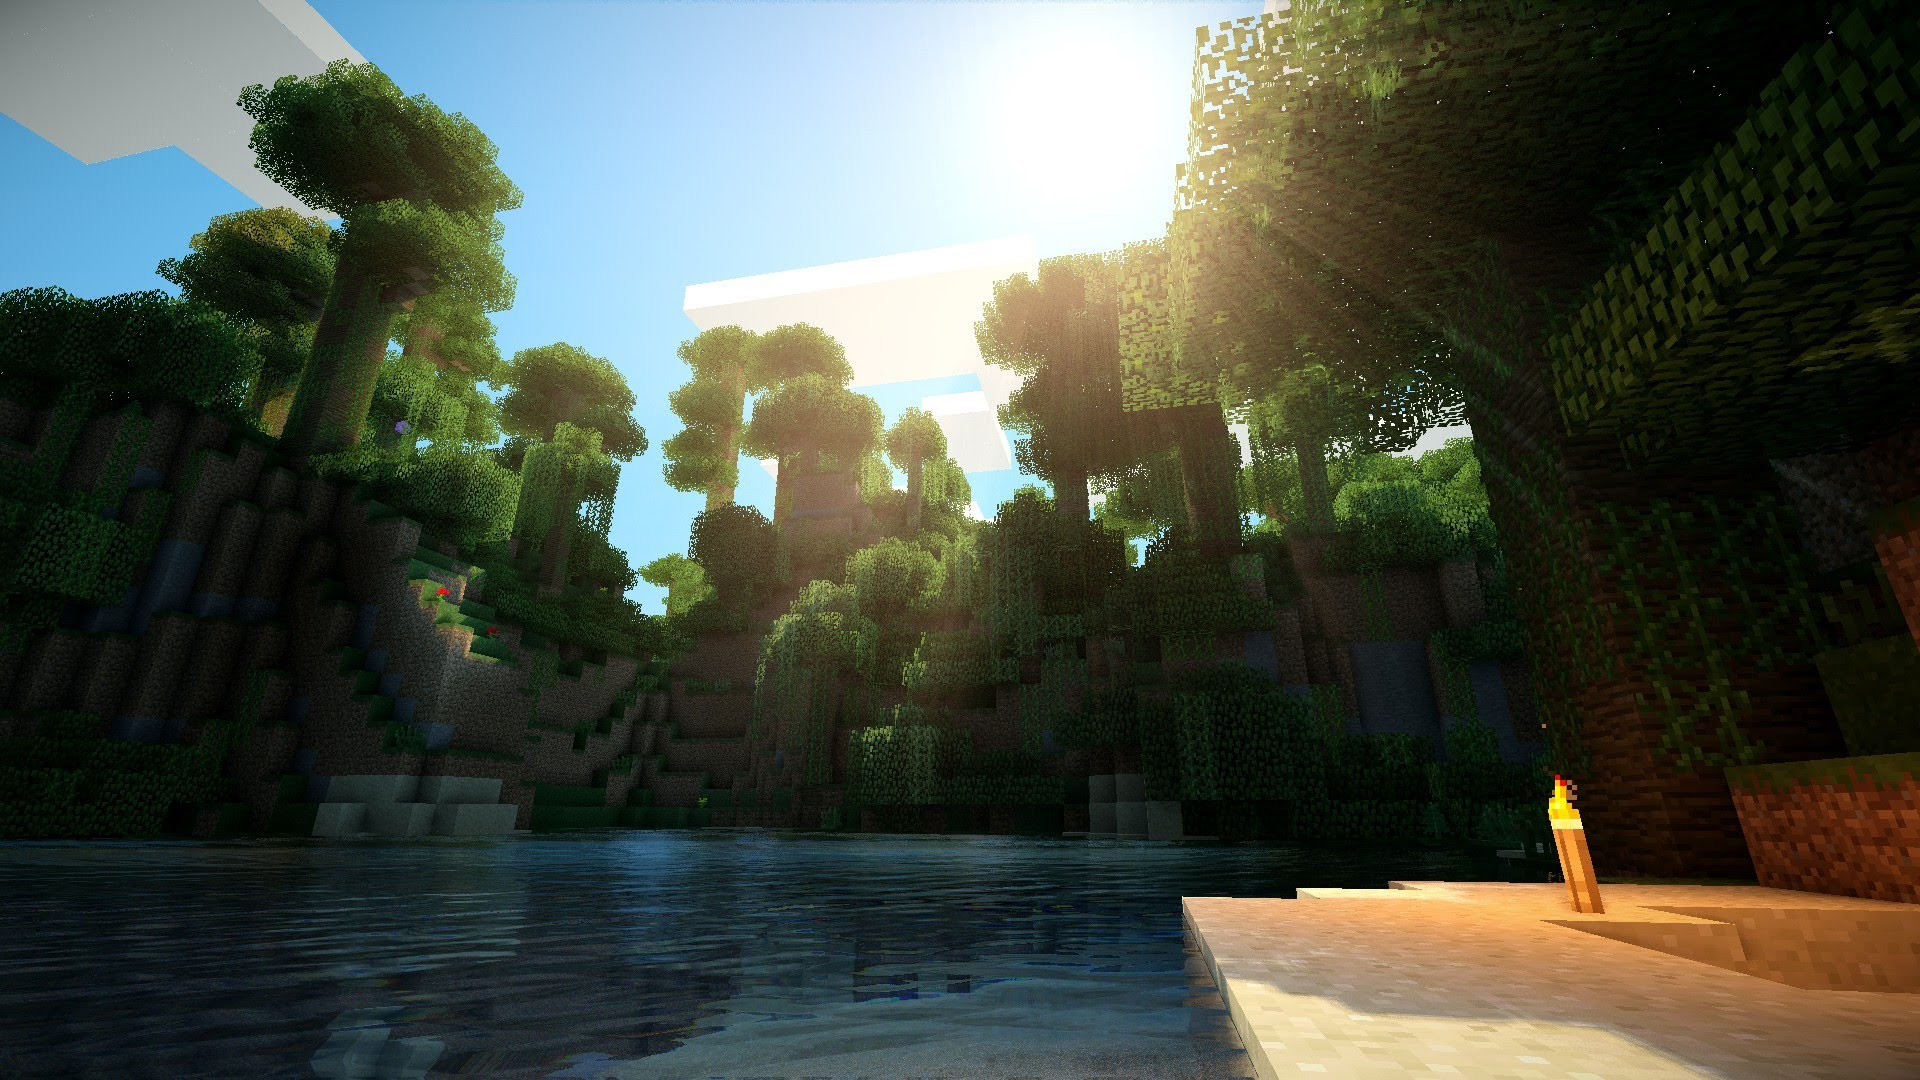 Is-it-just-me-or-does-this-actually-make-me-want-to-go-outside-Join-our-Minecraft-server-here-mc-wallpaper-wpc5806416